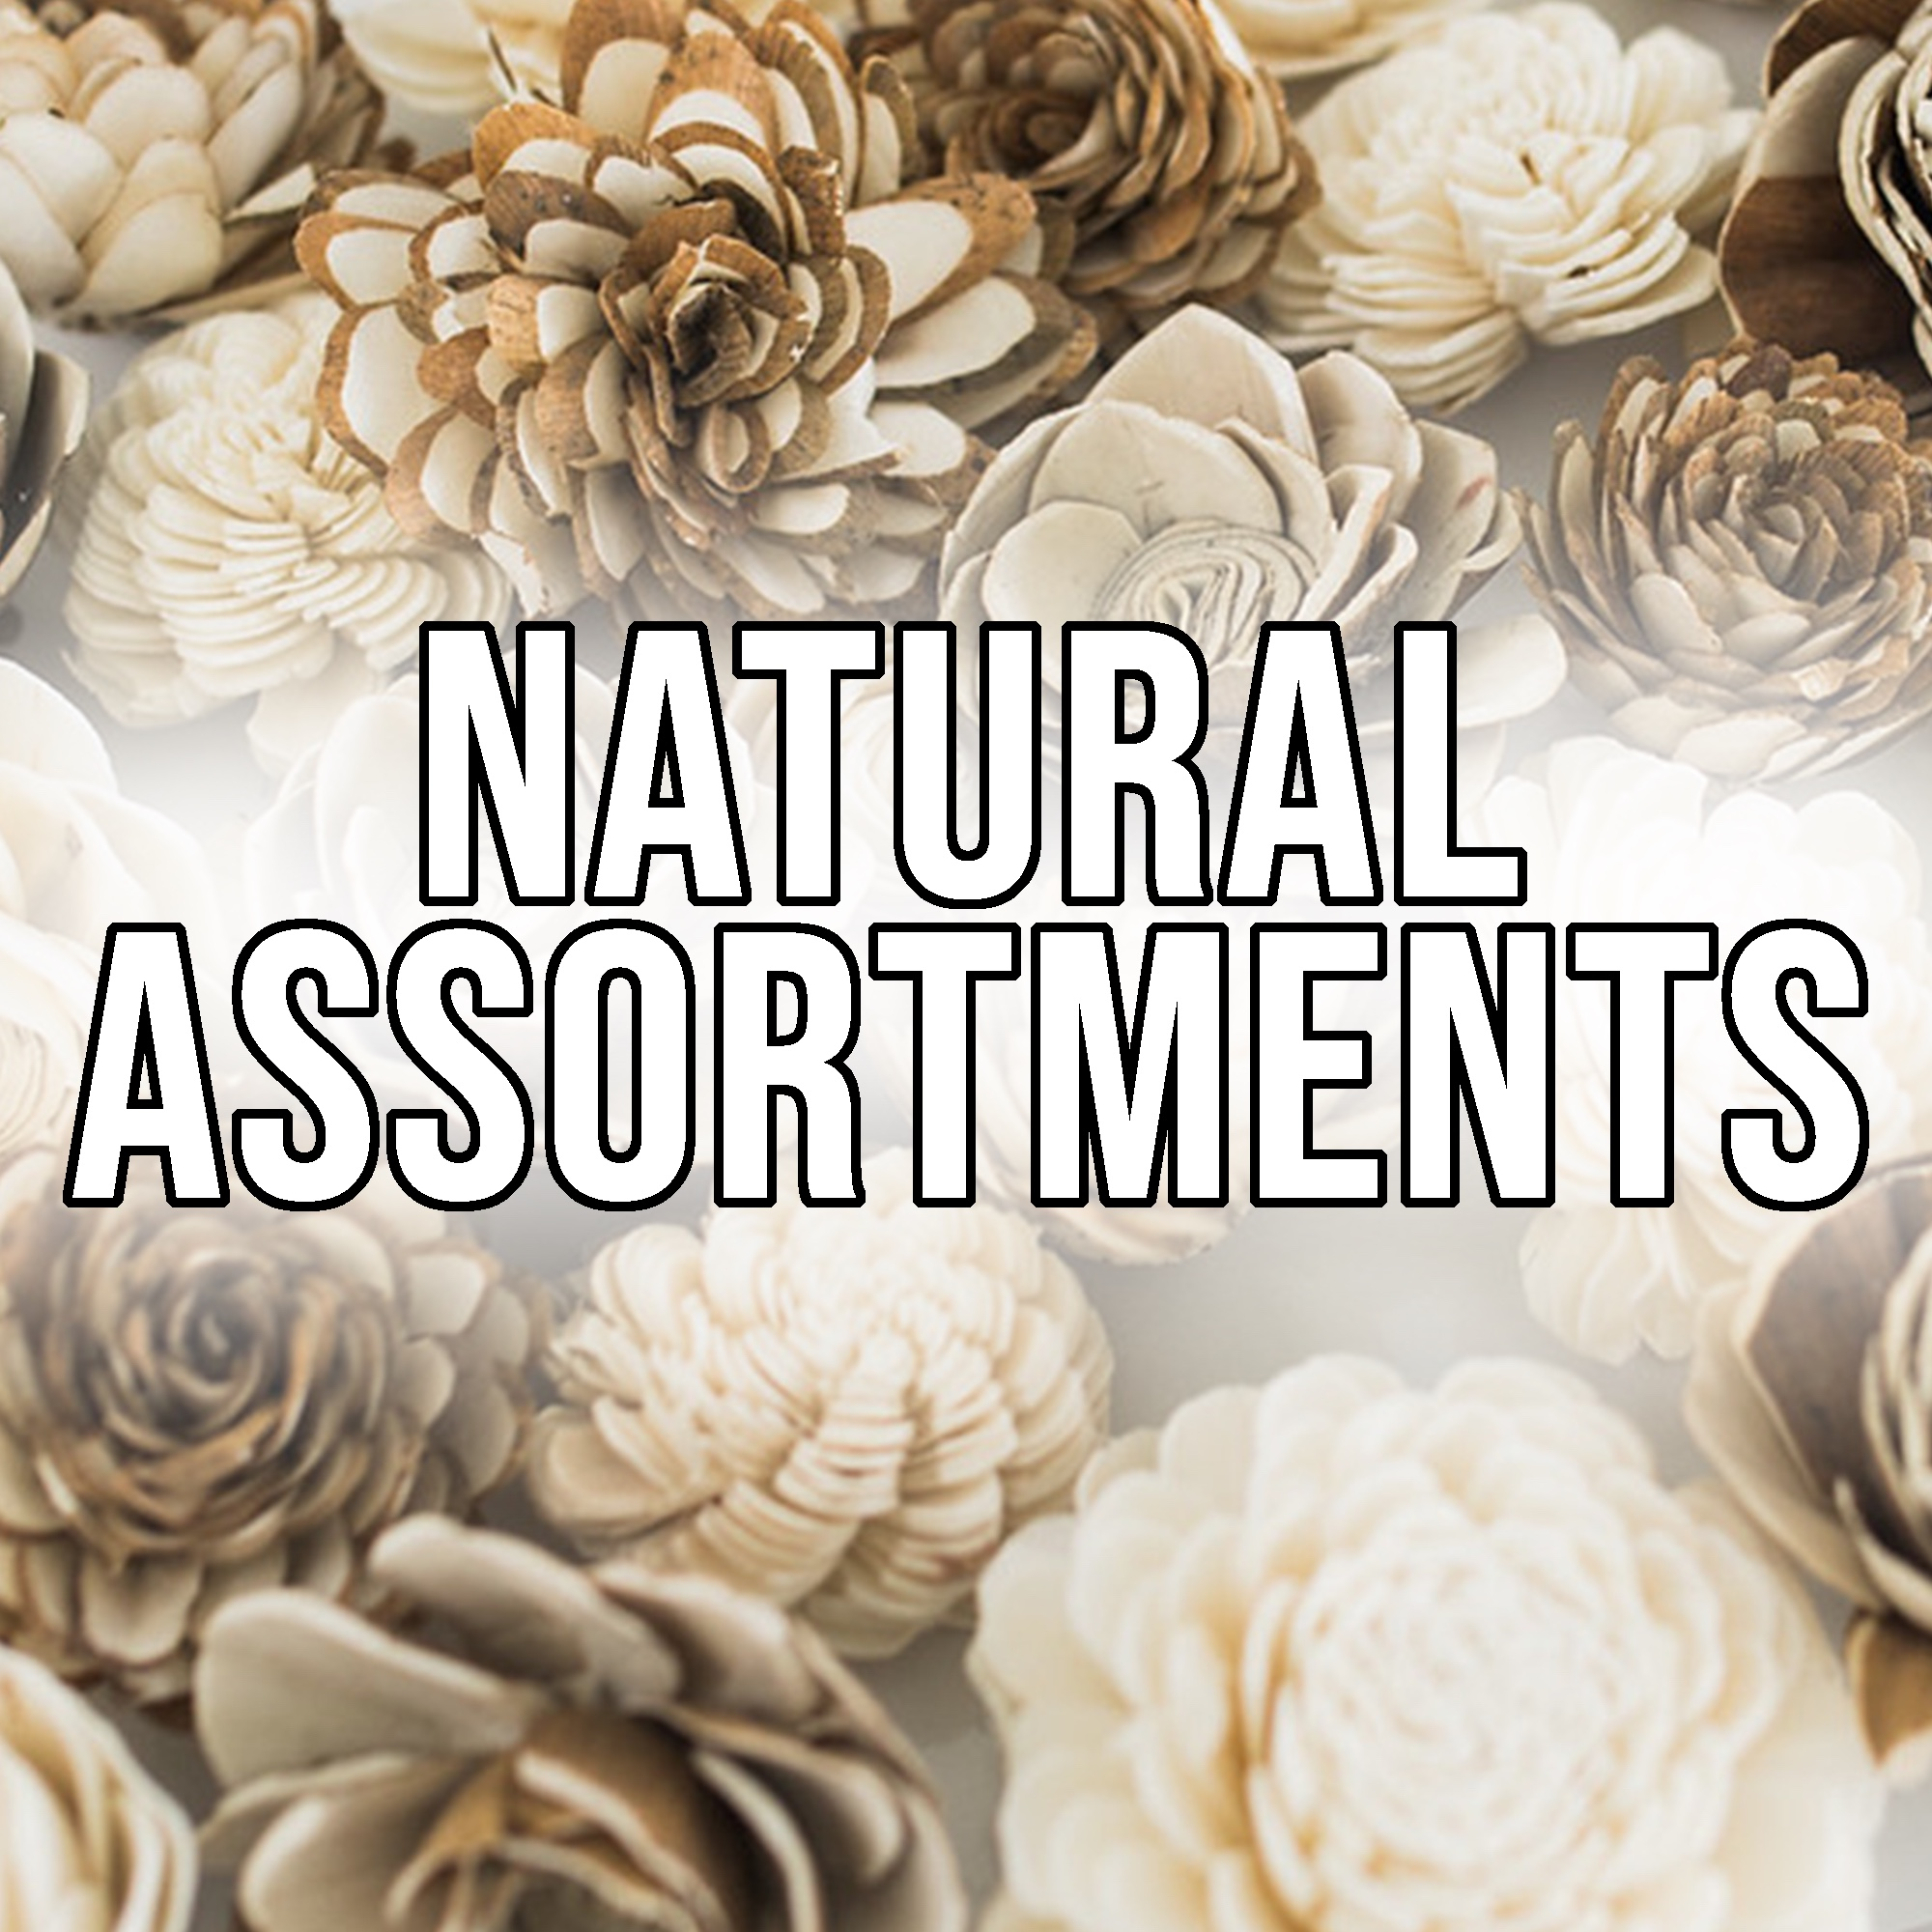 Natural Assortments